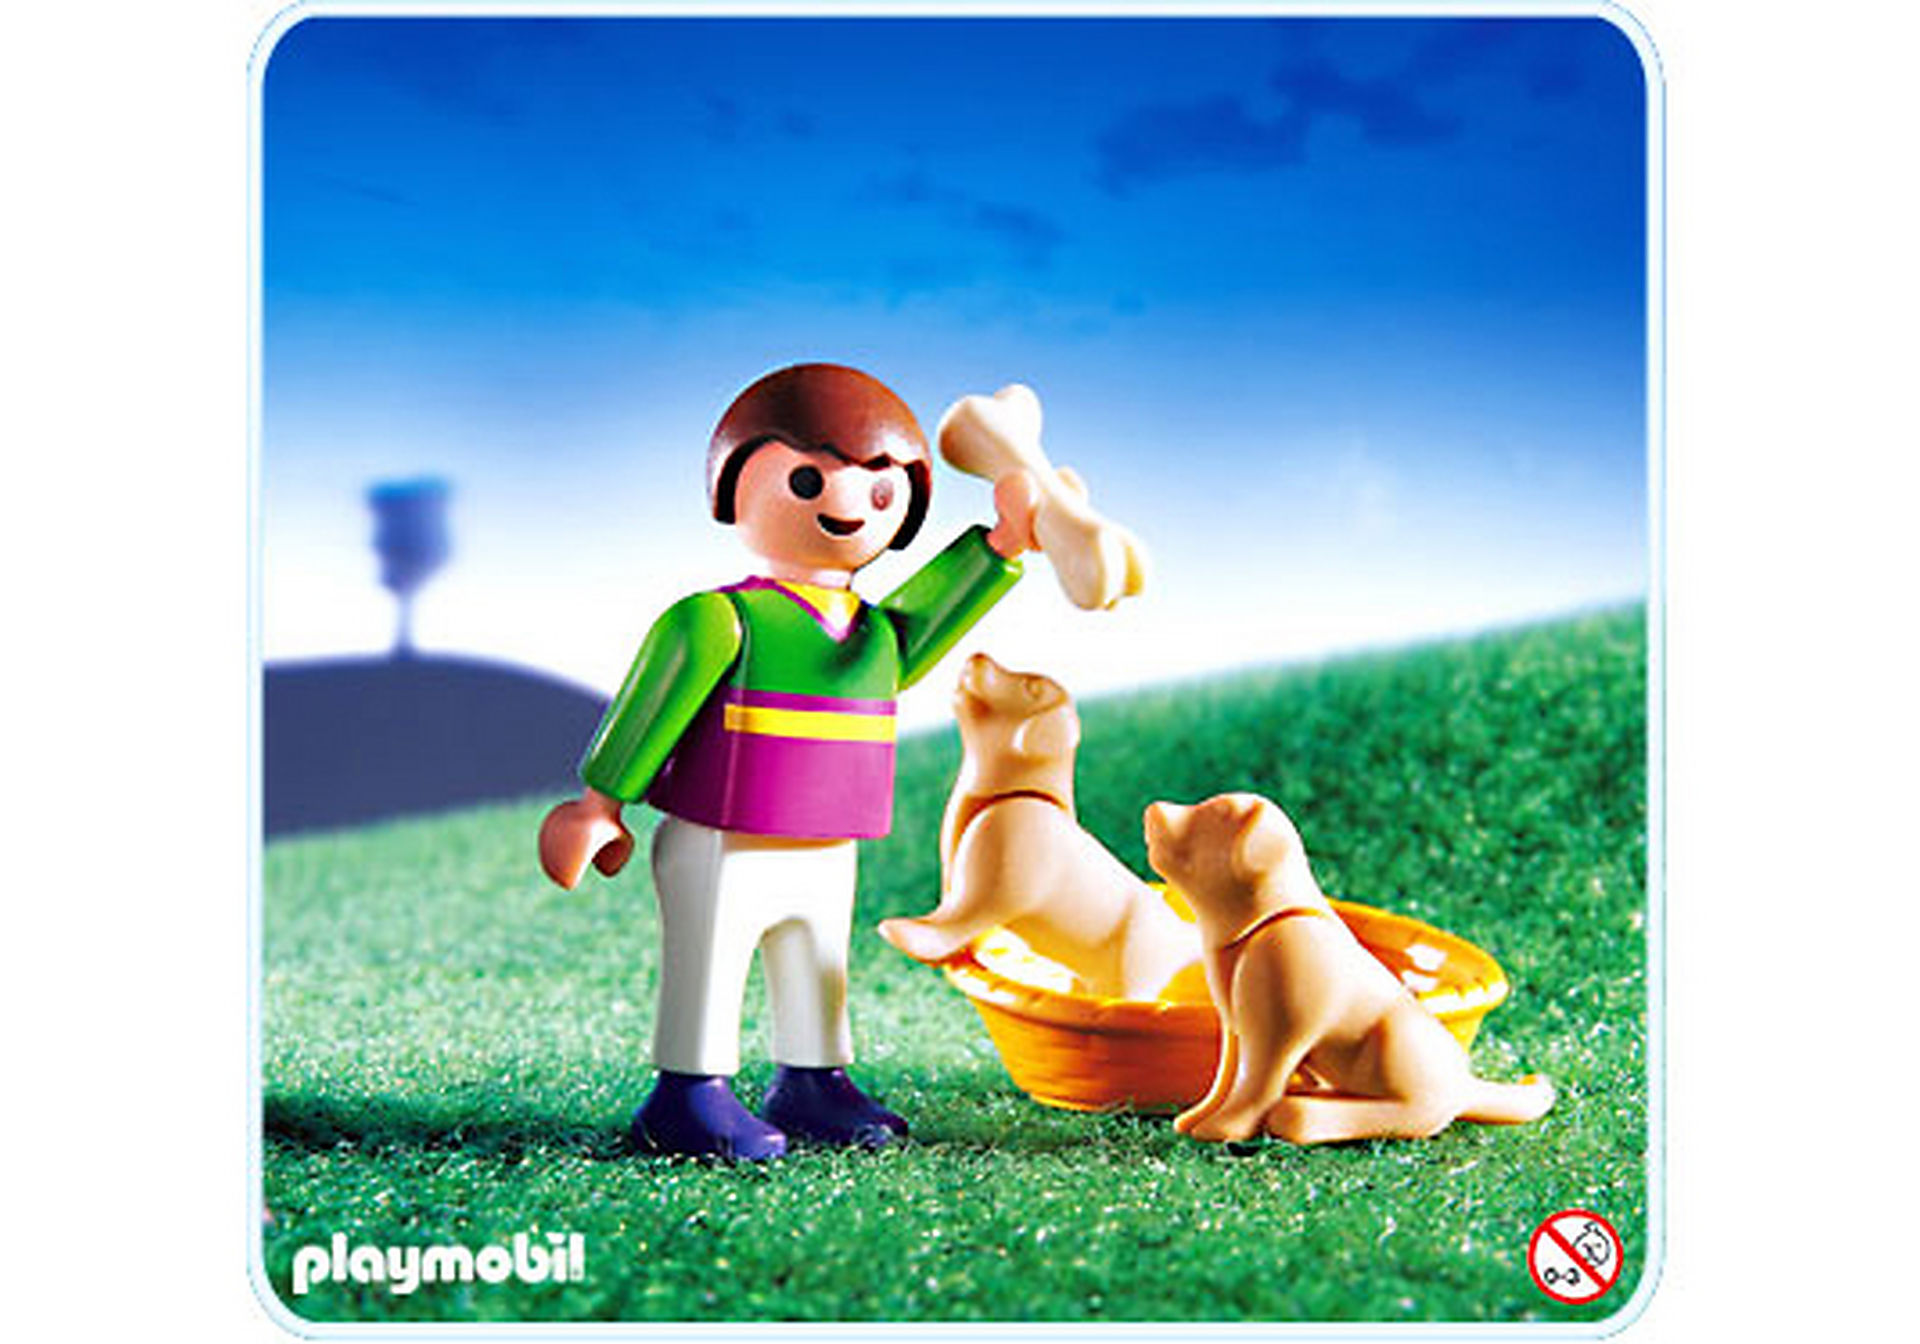 http://media.playmobil.com/i/playmobil/4598-A_product_detail/Junge mit Welpen